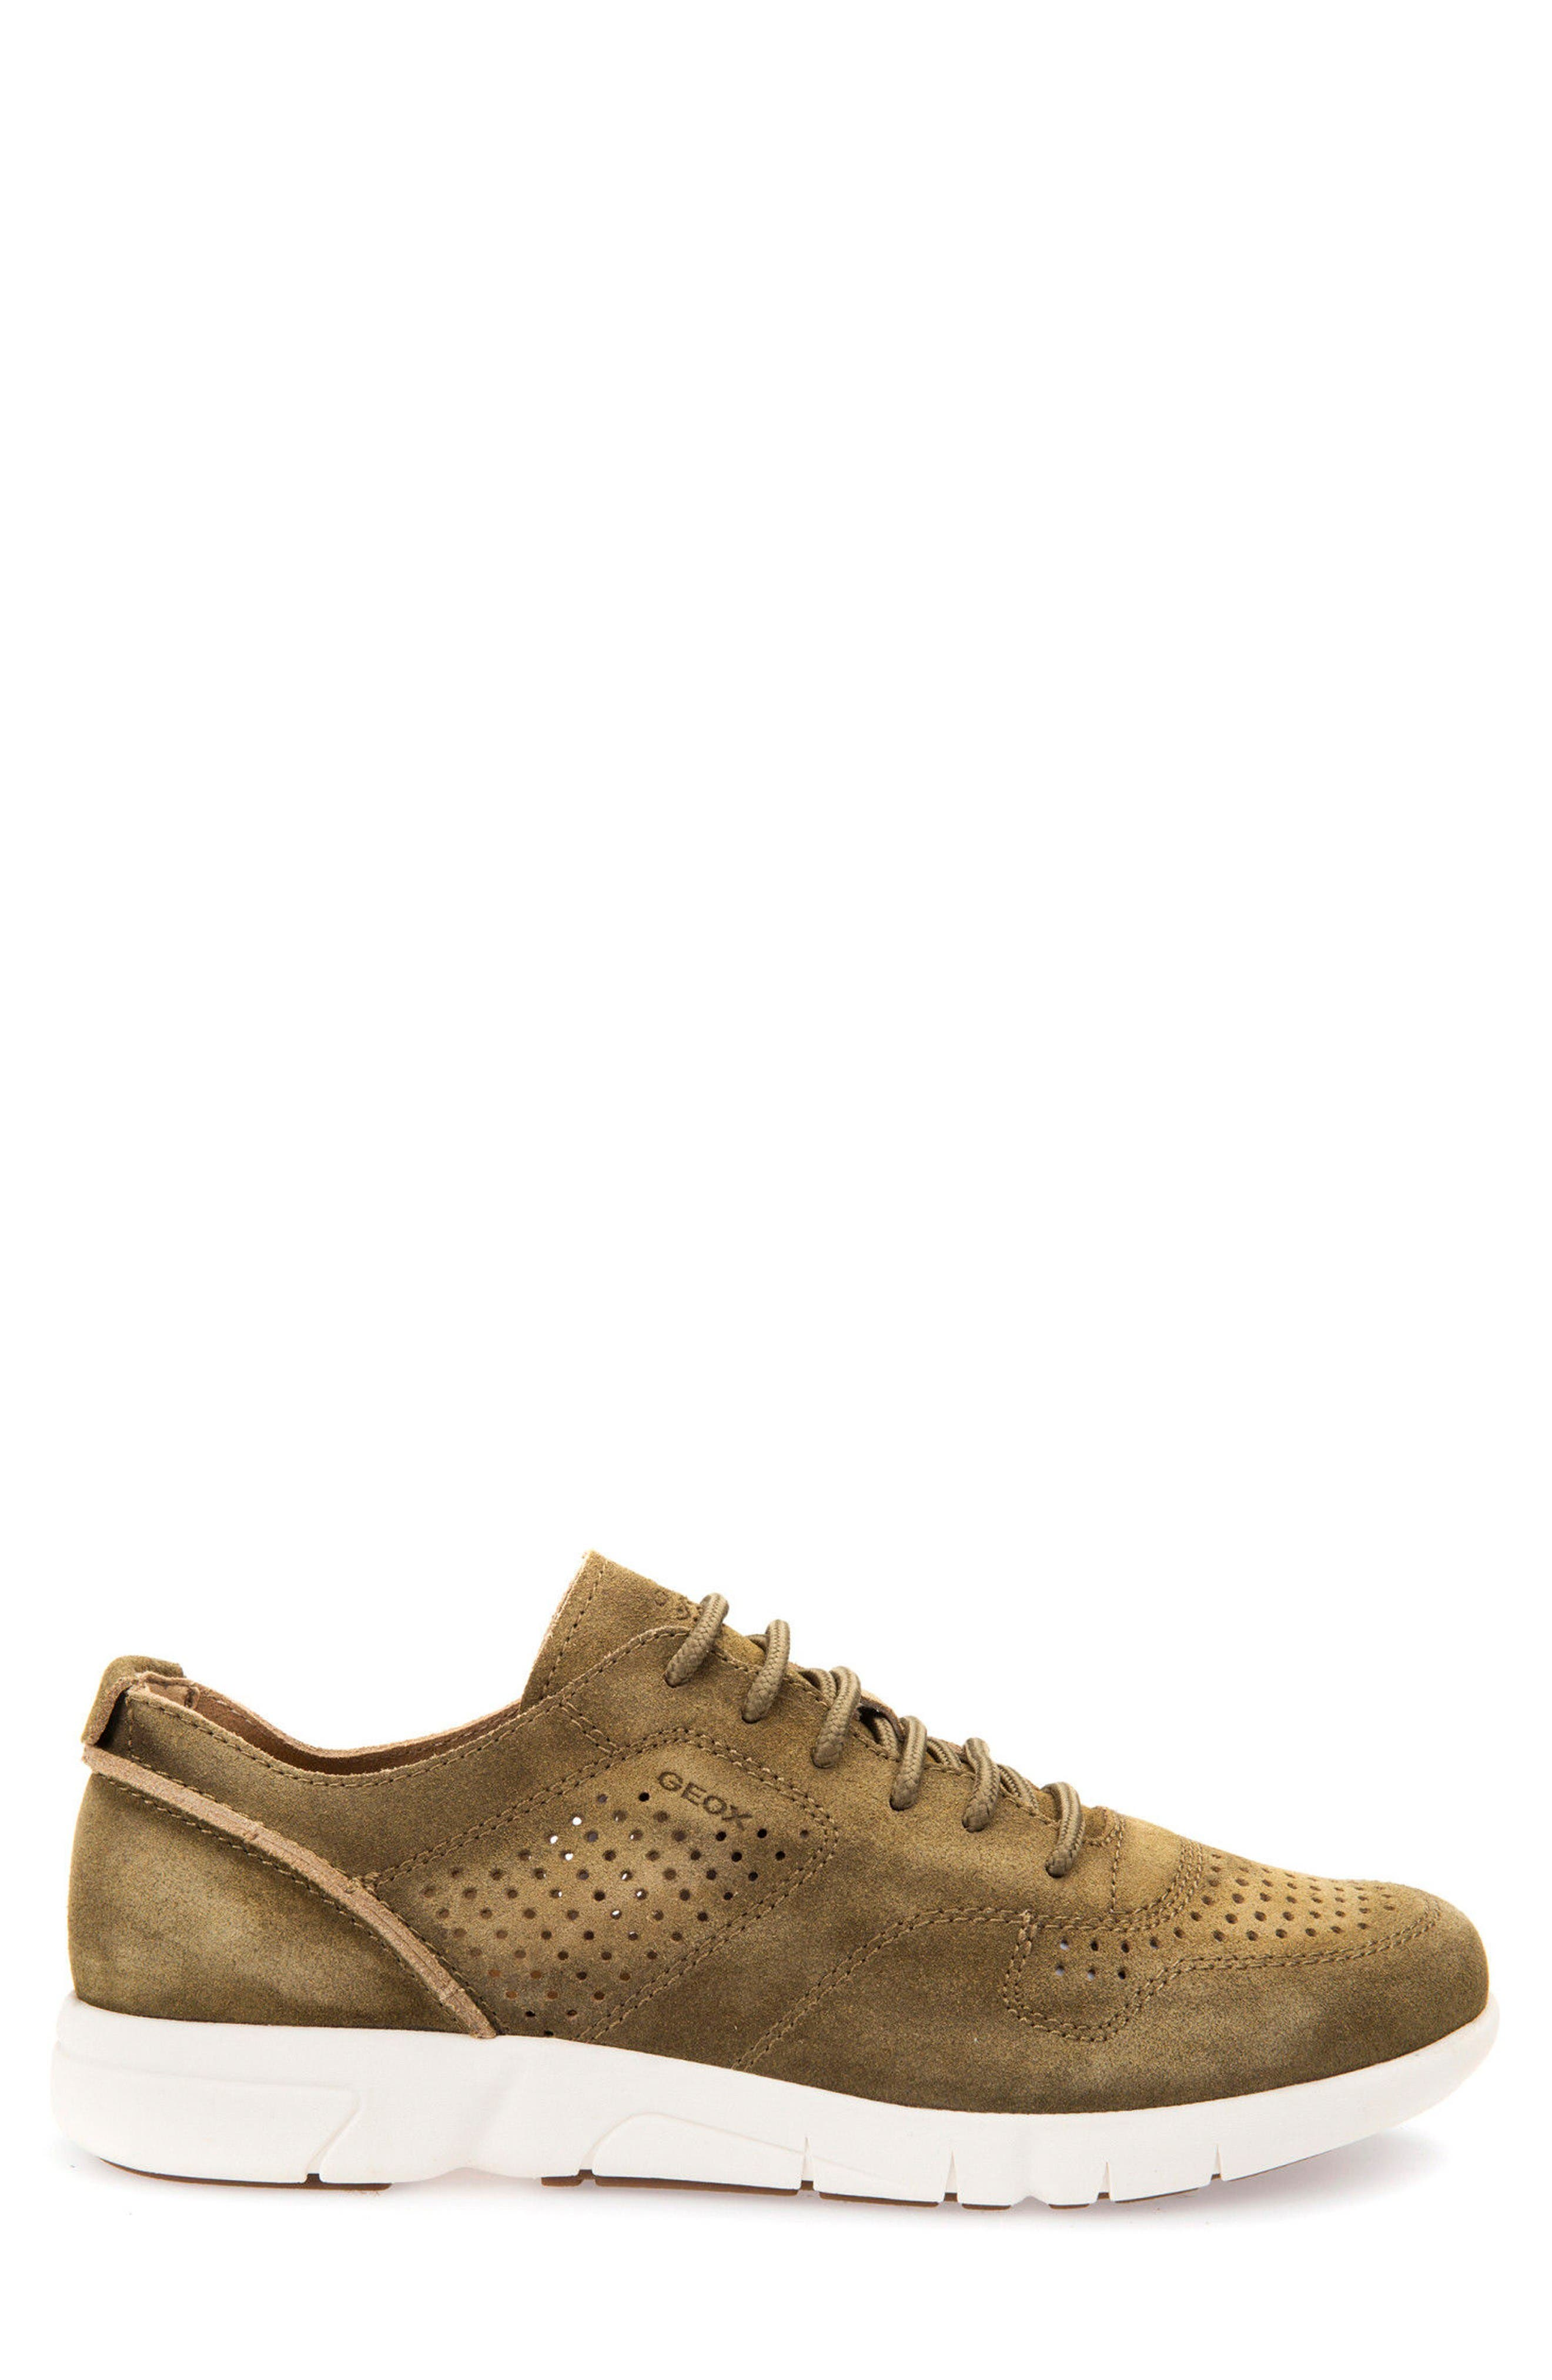 Alternate Image 3  - Geox Brattley 2 Perforated Sneaker (Men)